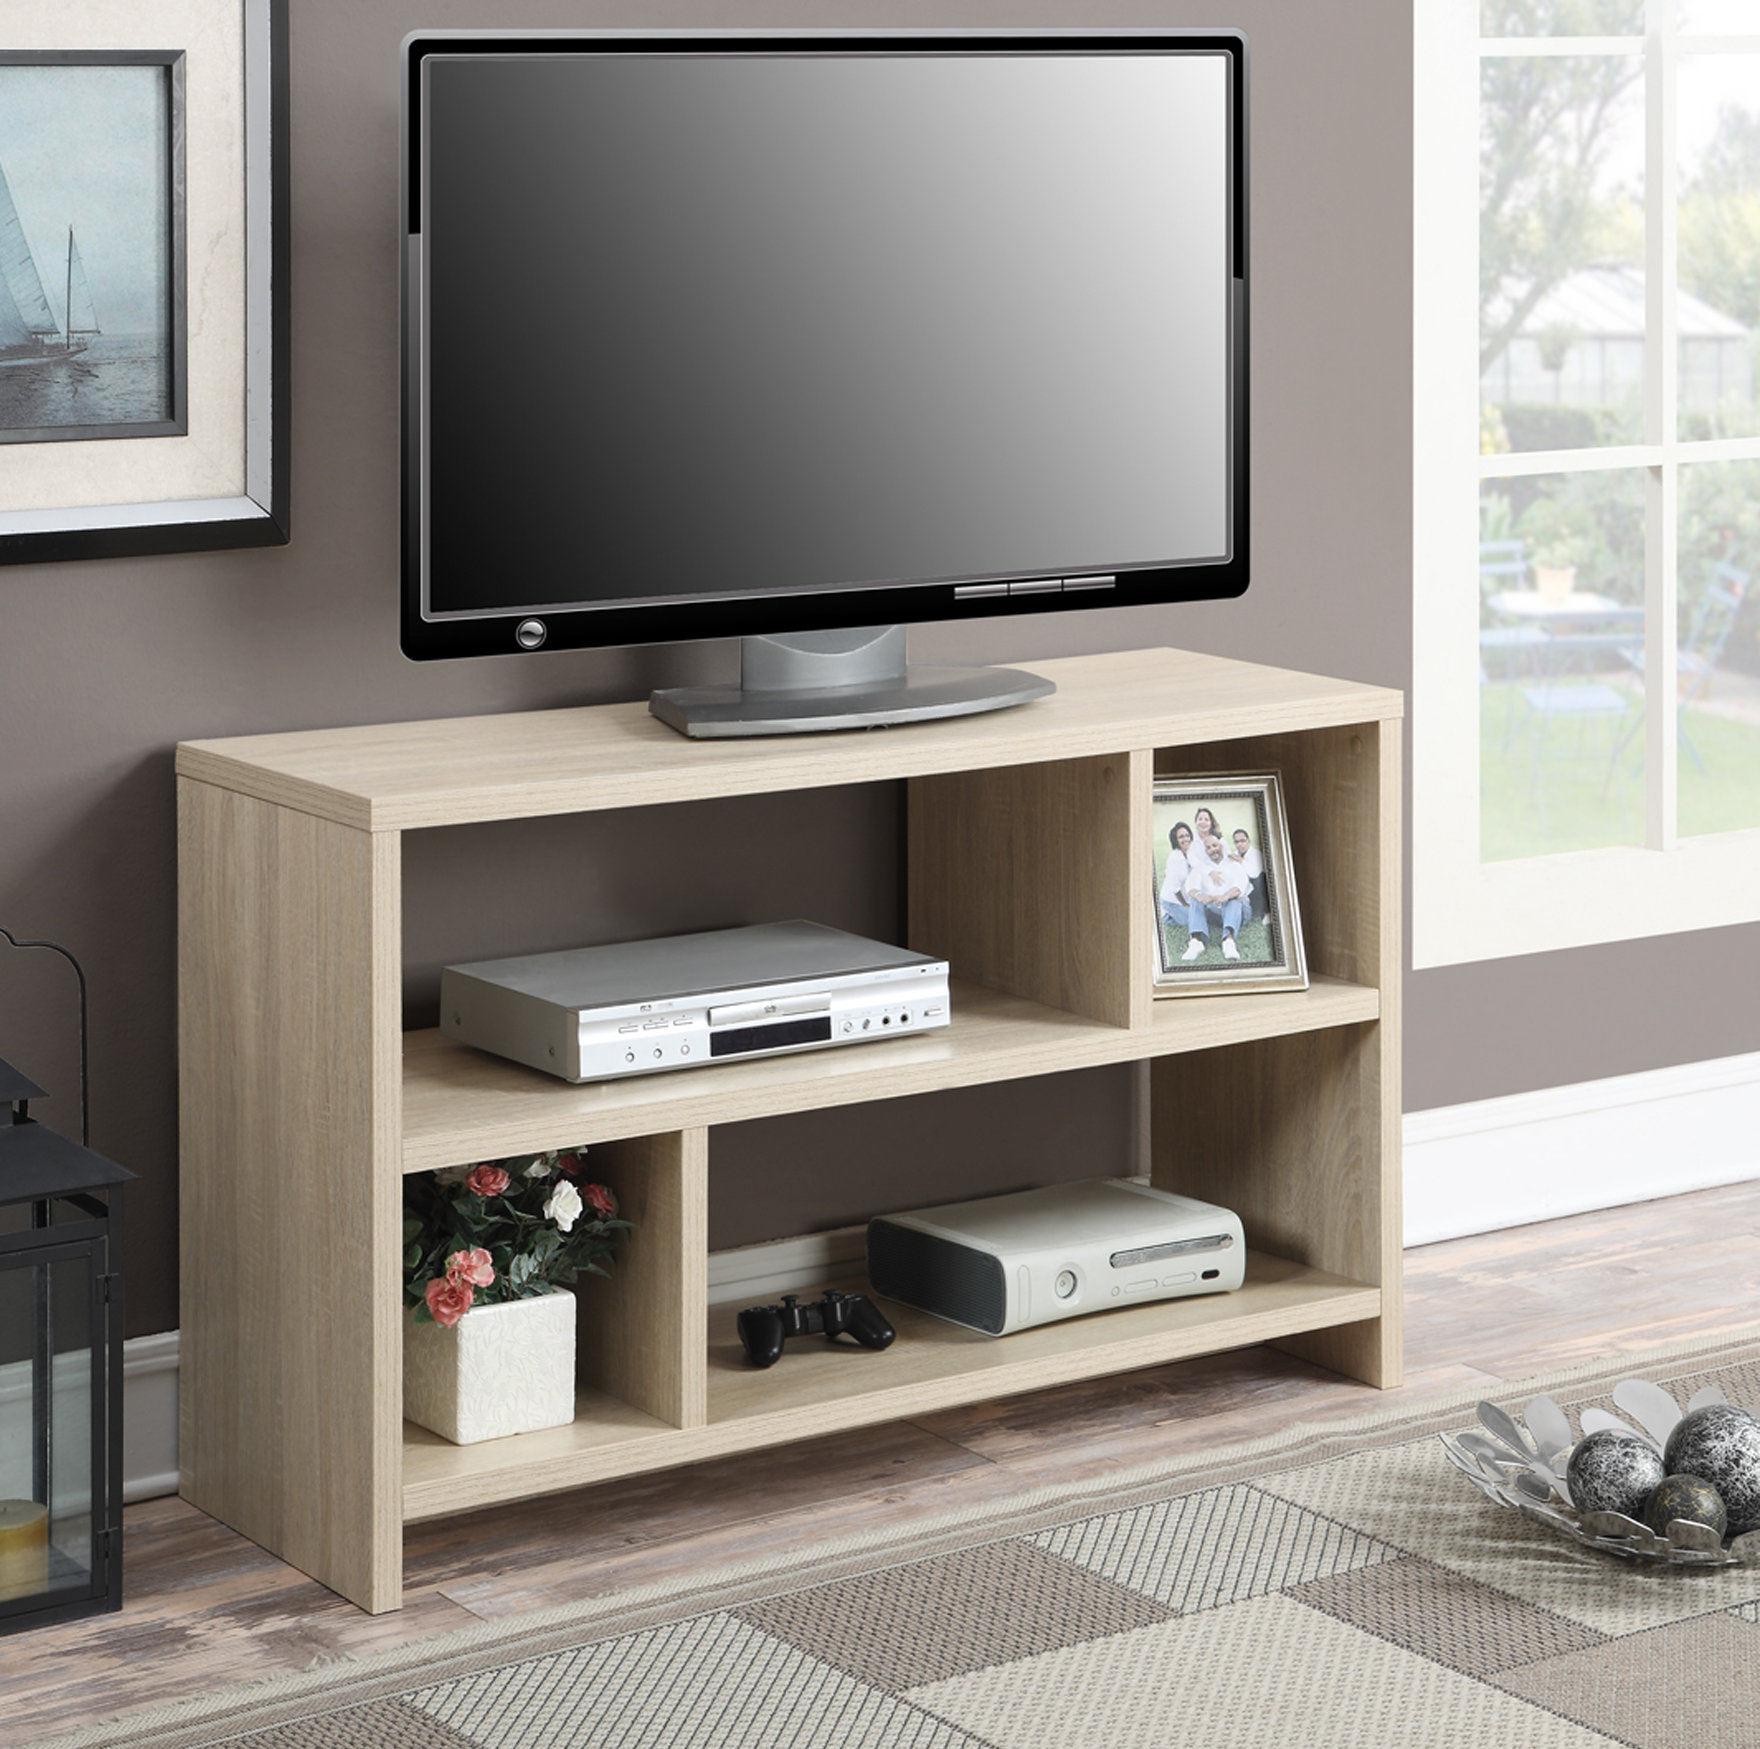 "Current Ericka Tv Stands For Tvs Up To 42"" In D'aulizio Tv Stand For Tvs Up To 43"" (View 5 of 20)"